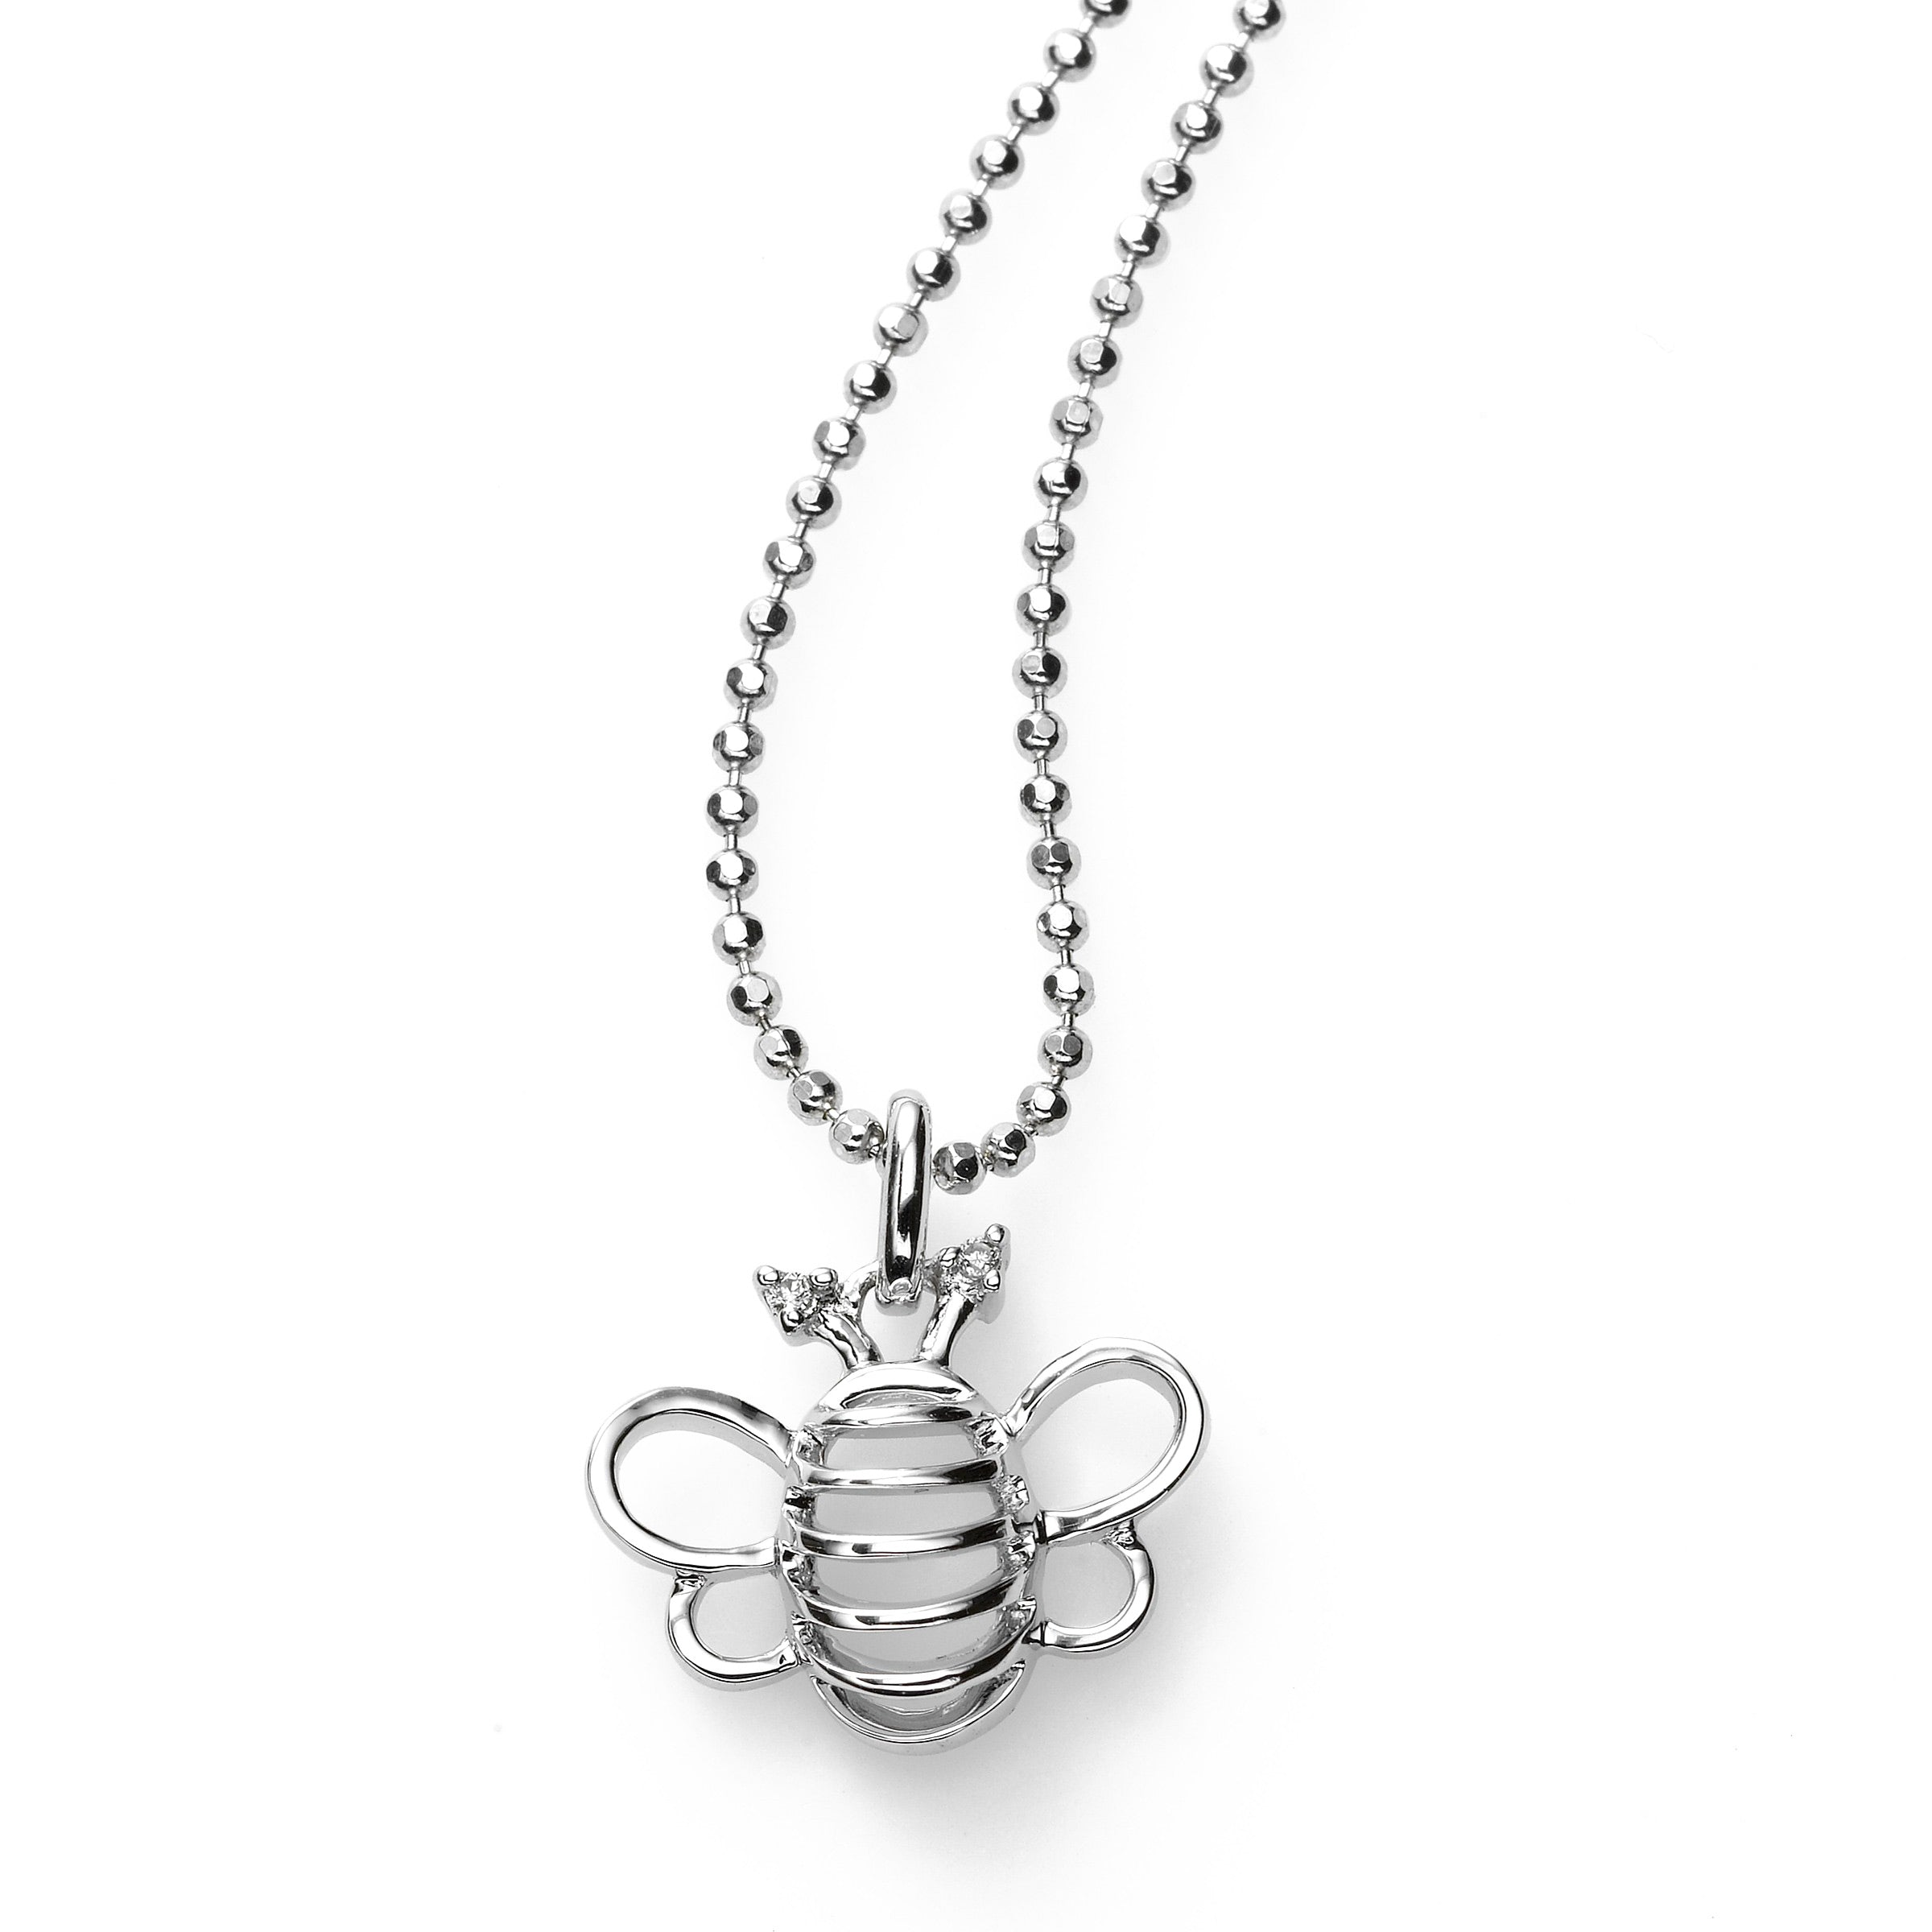 Bee Pendant, Diamond Accent, Mini Size, Sterling Silver, 18 Inch Chain